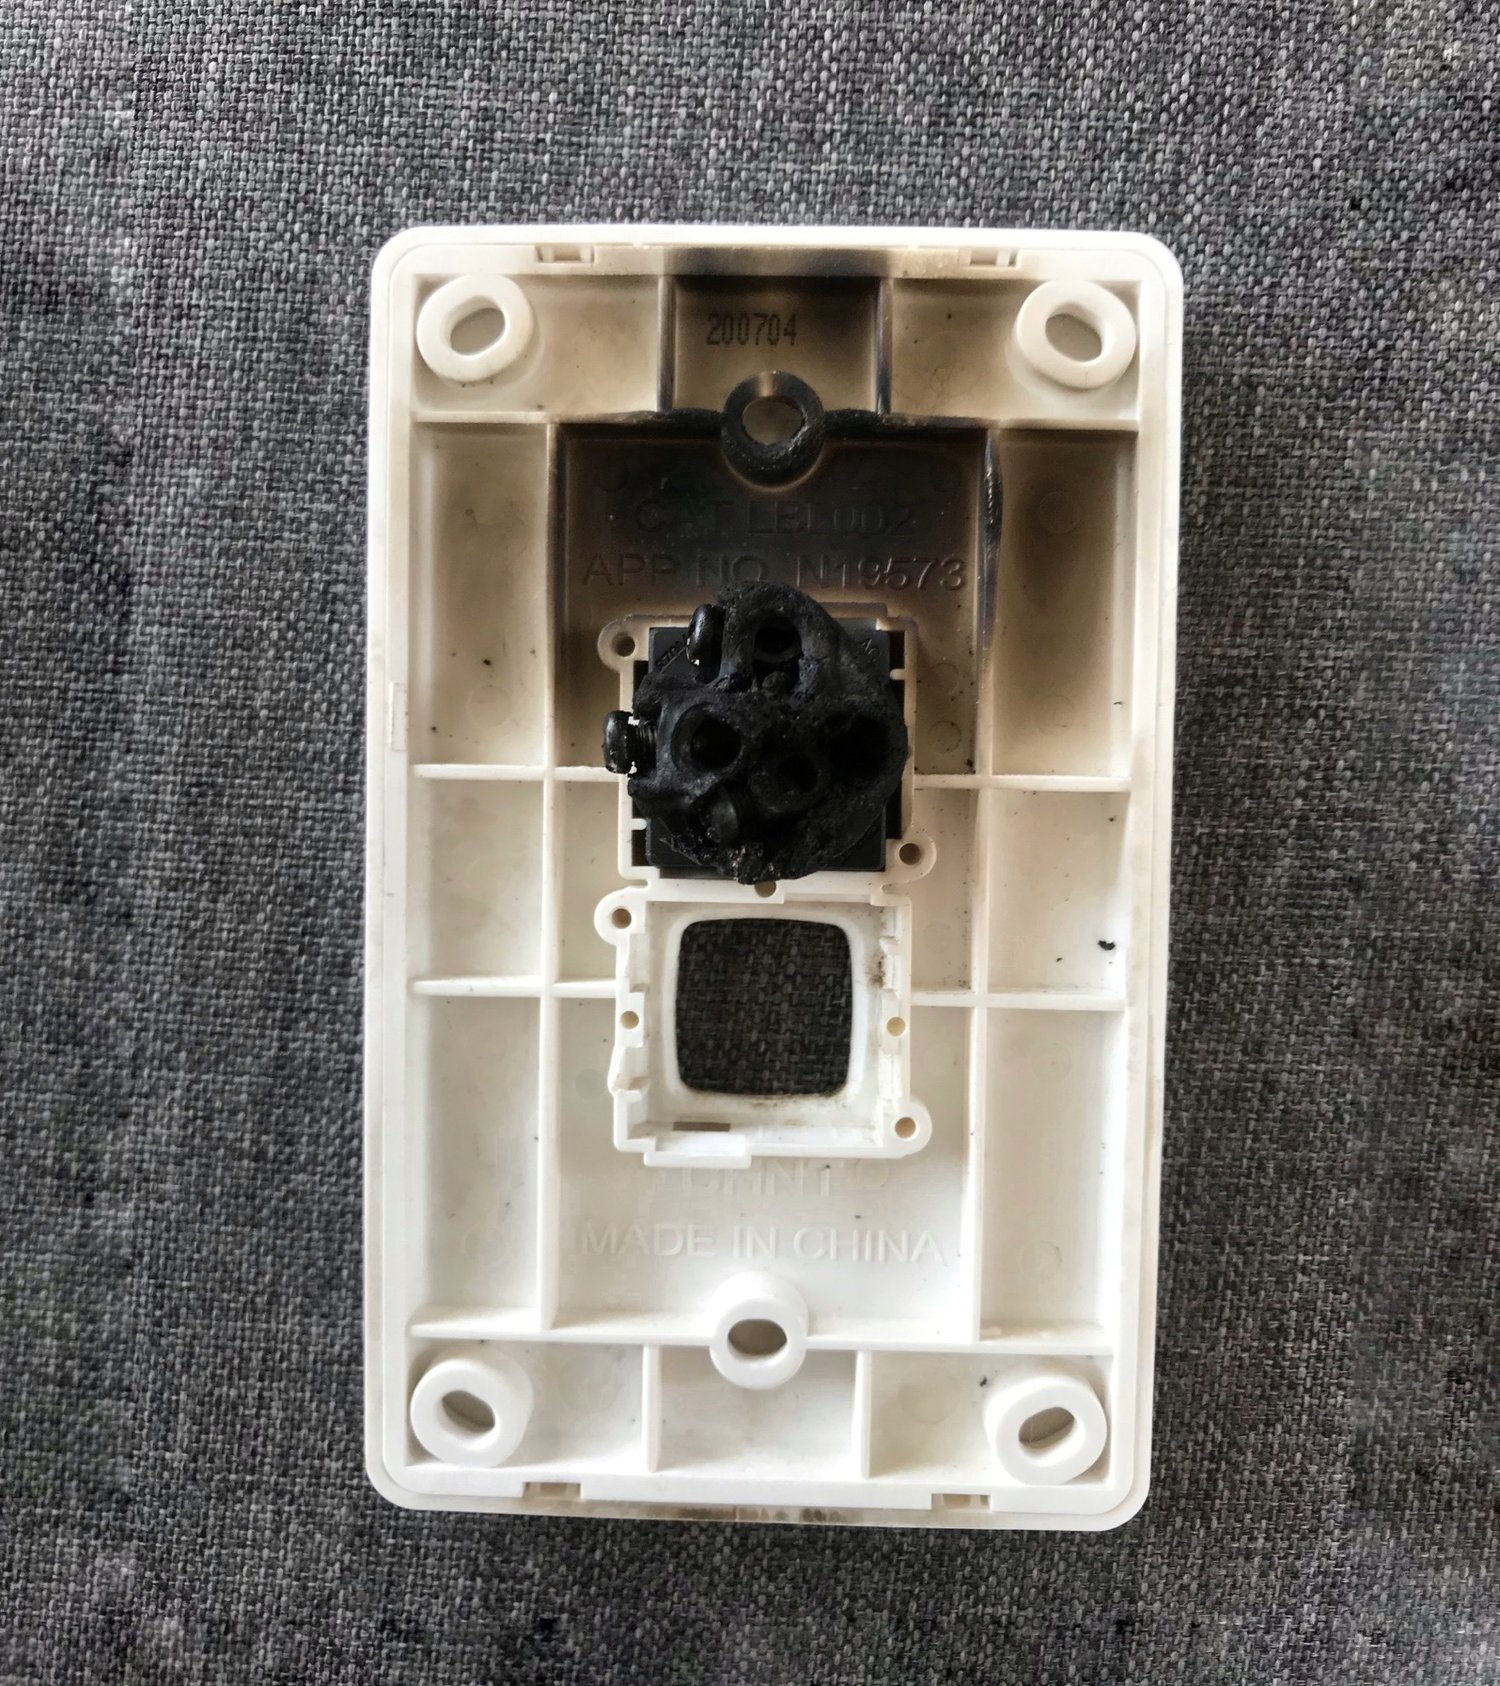 The customer's damaged electrical switch, which almost led to a house fire.